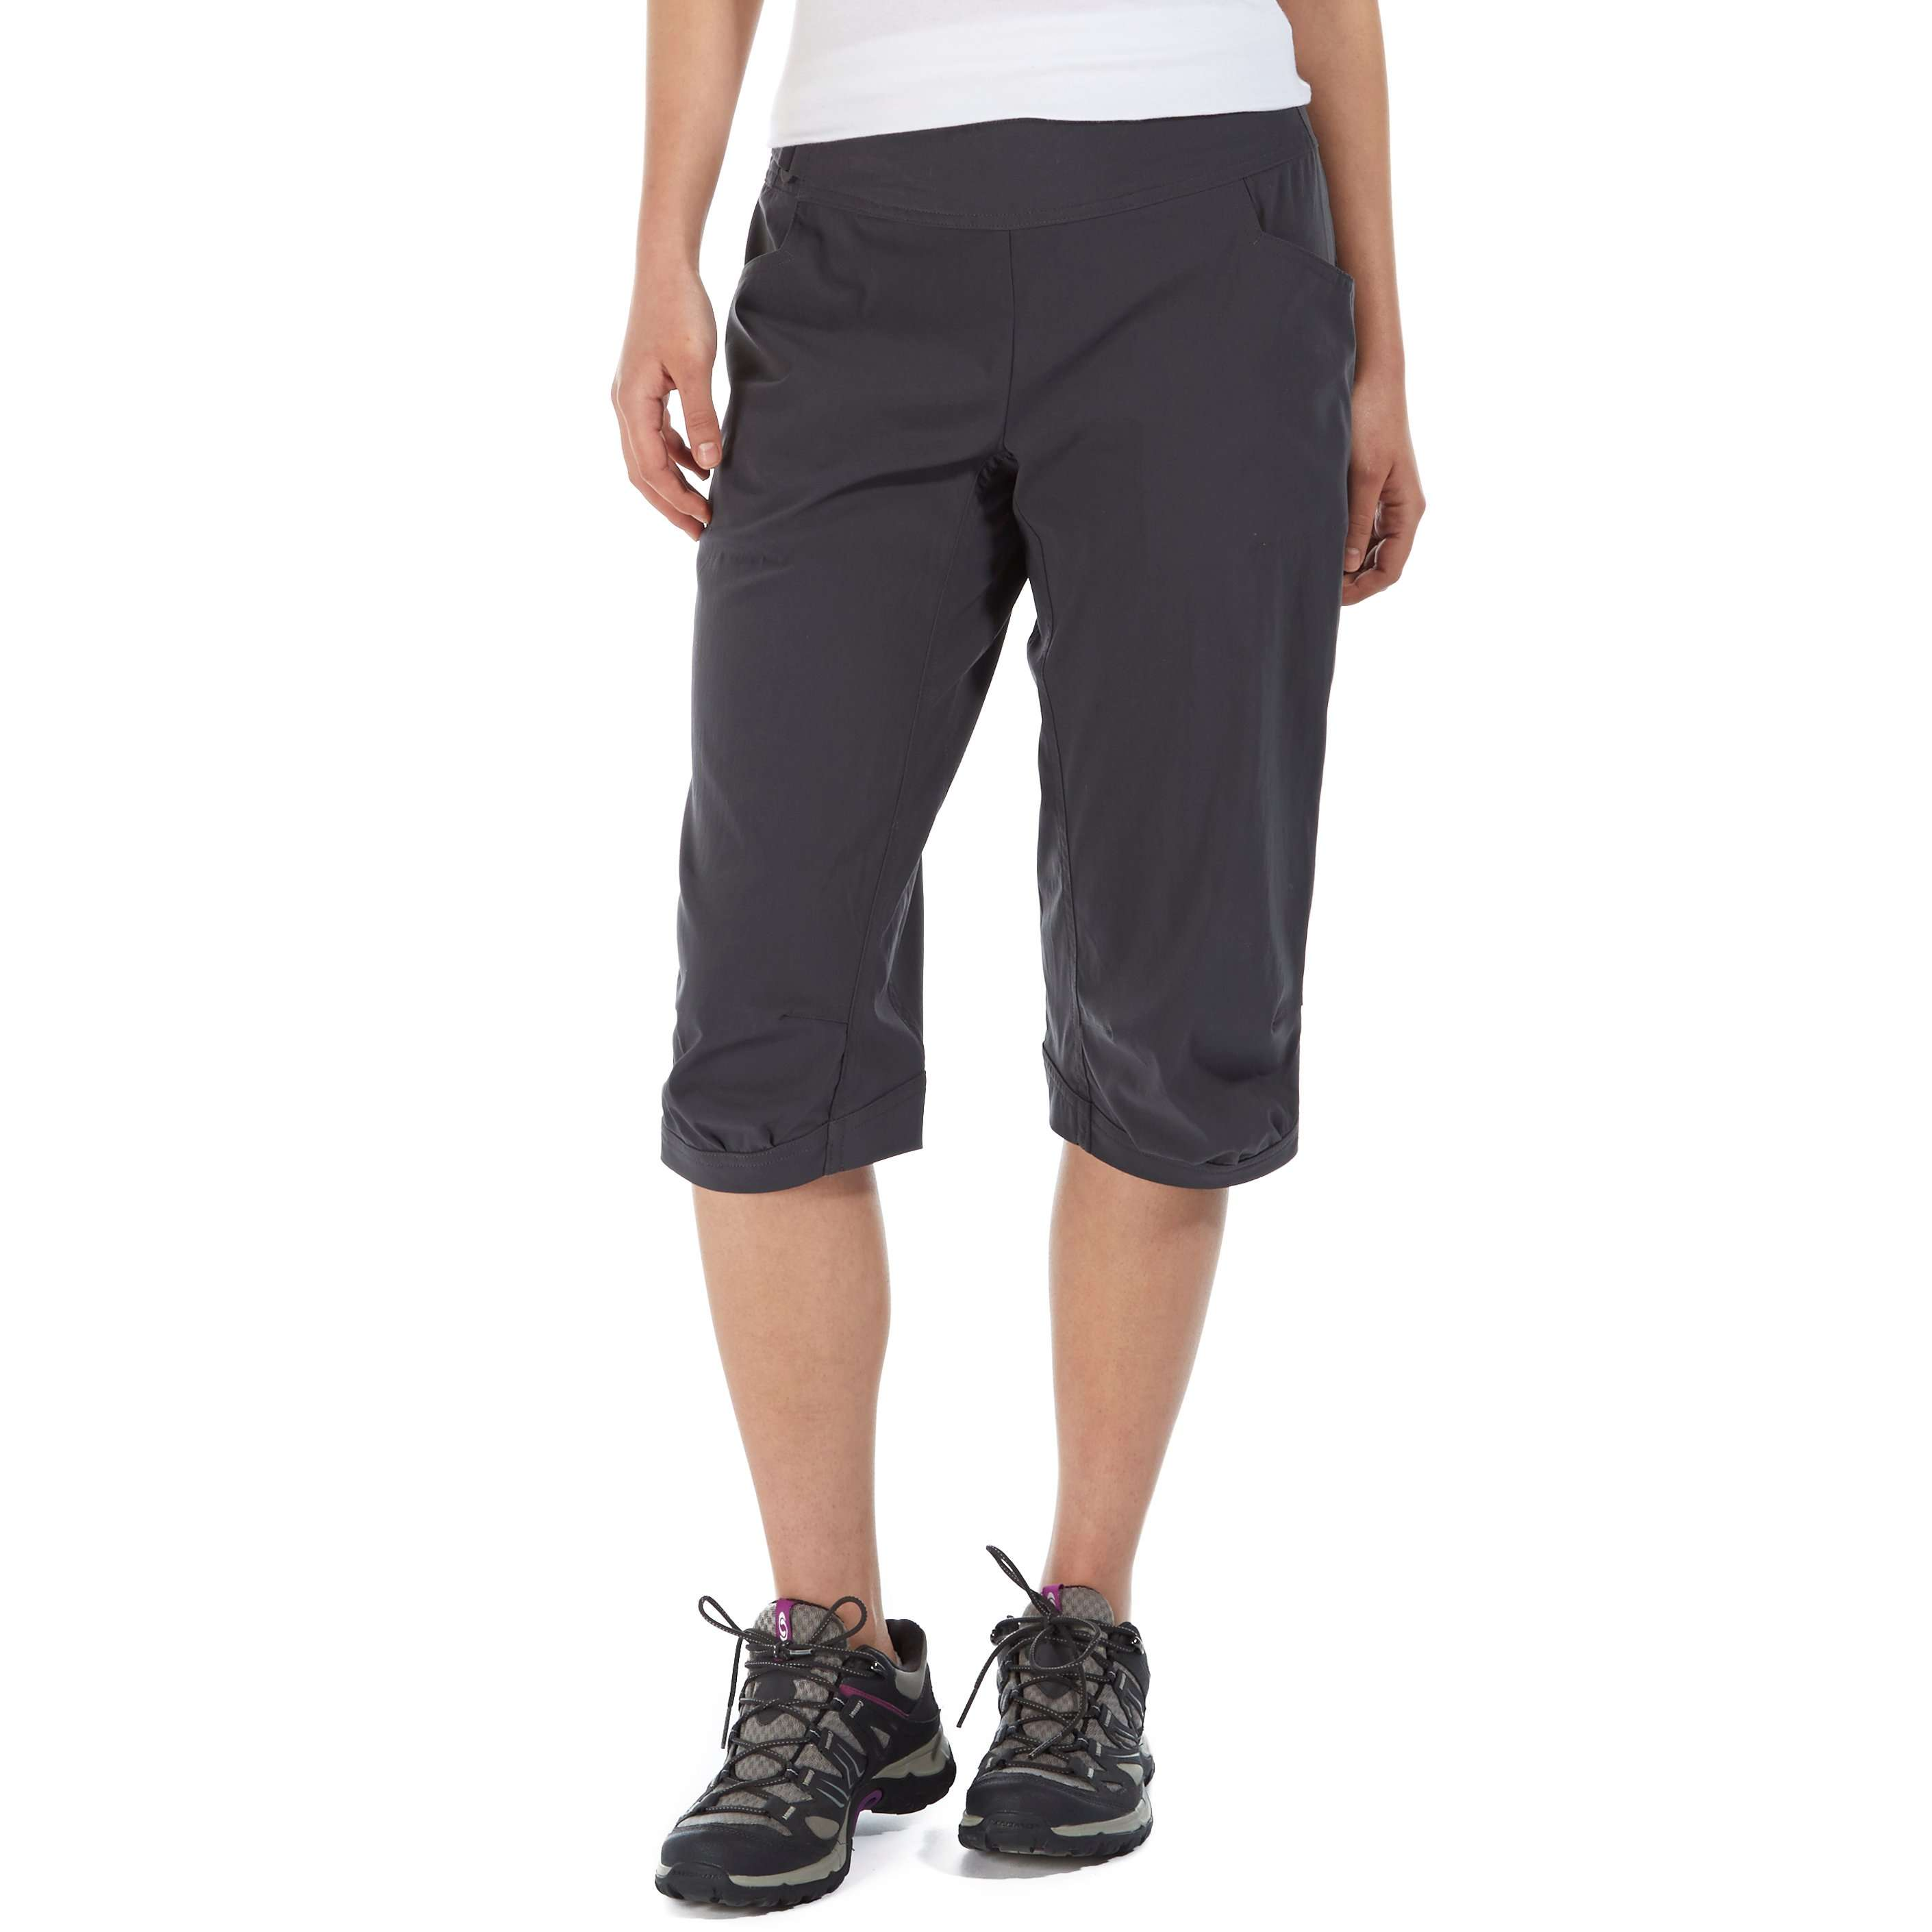 HAGLOFS Women's Amfibie Long Shorts